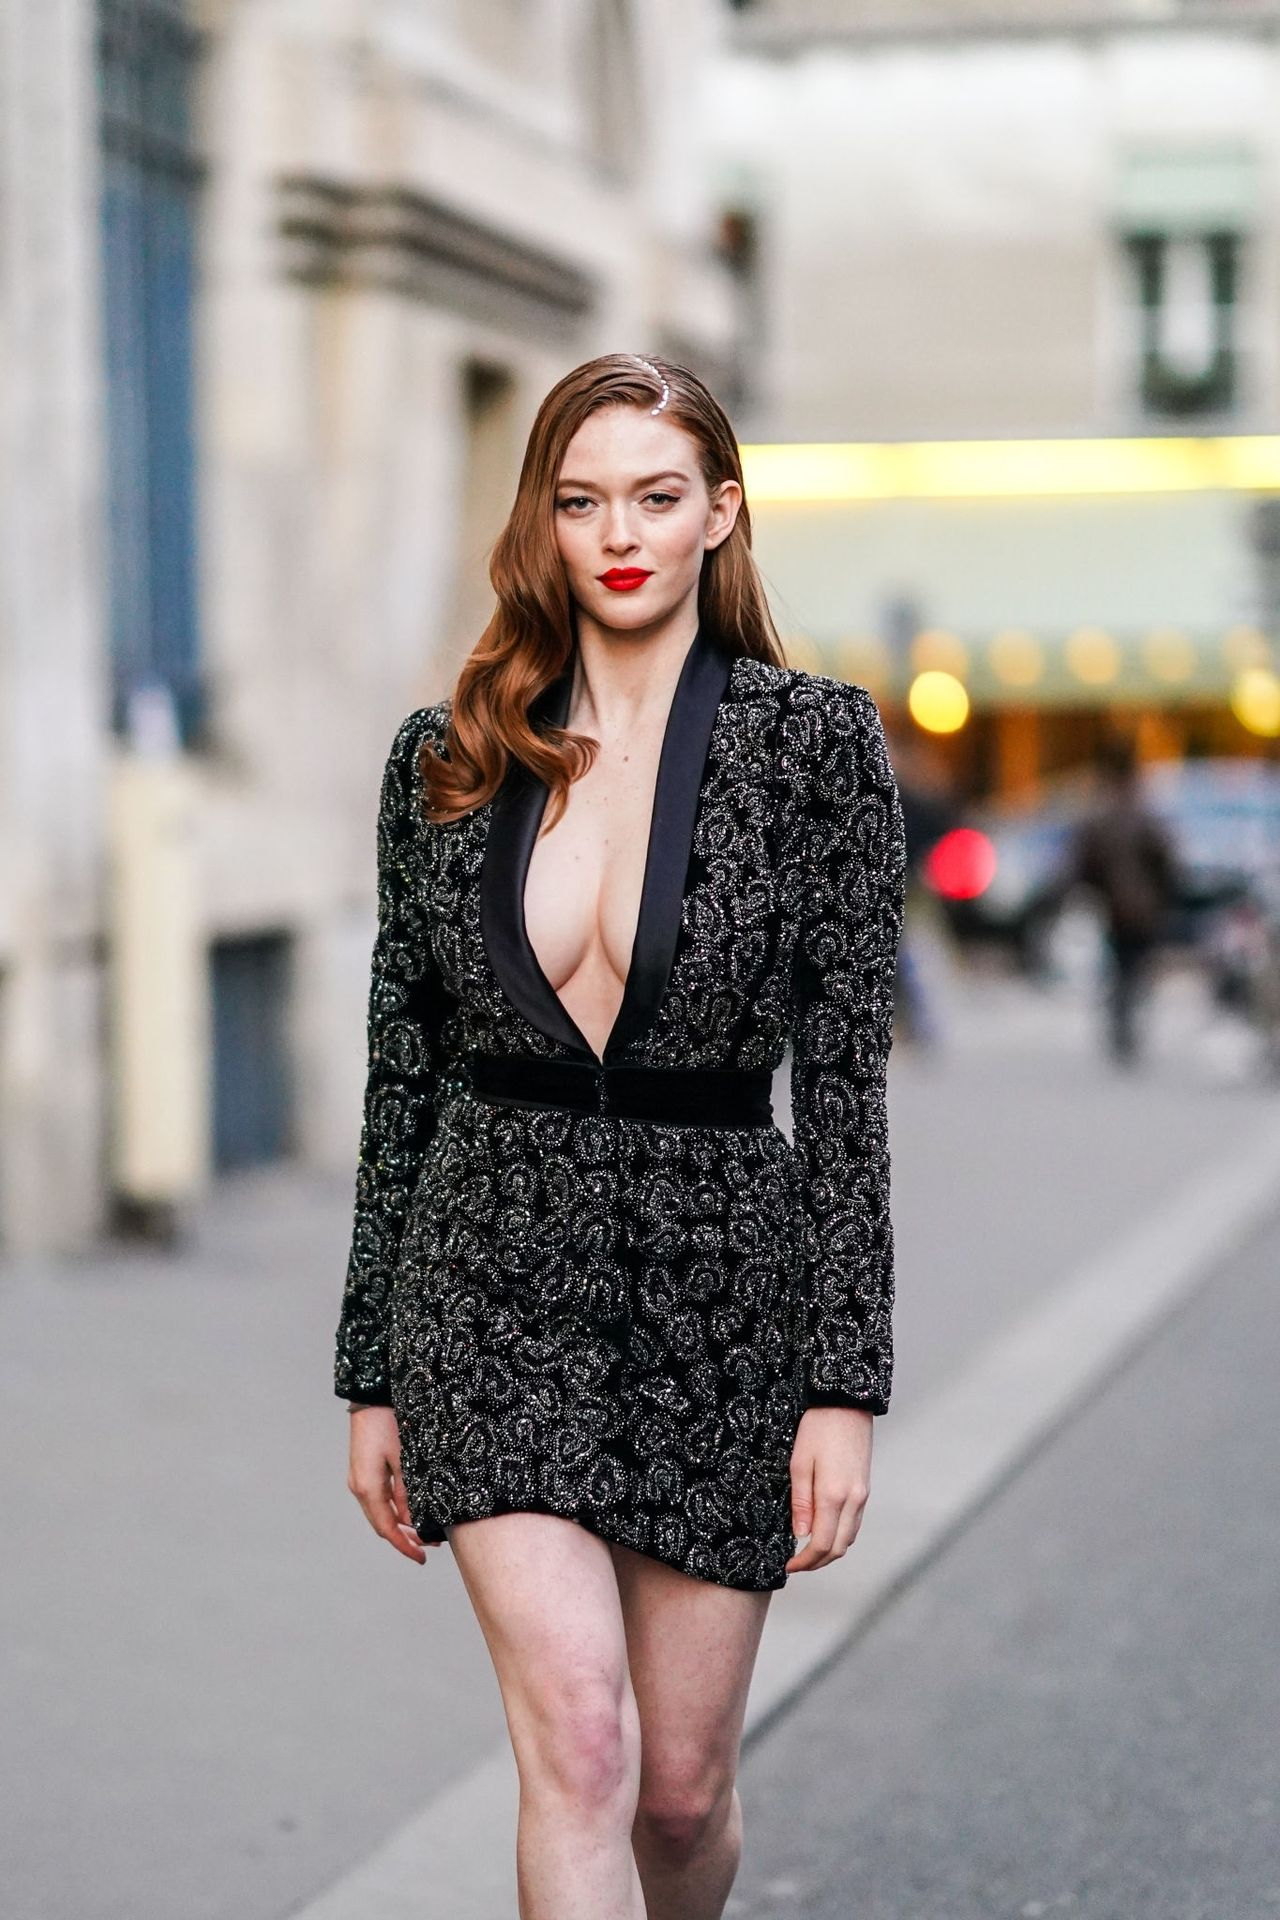 Larsen Thompson Wows With Her Tits At The Fashion Show 0018